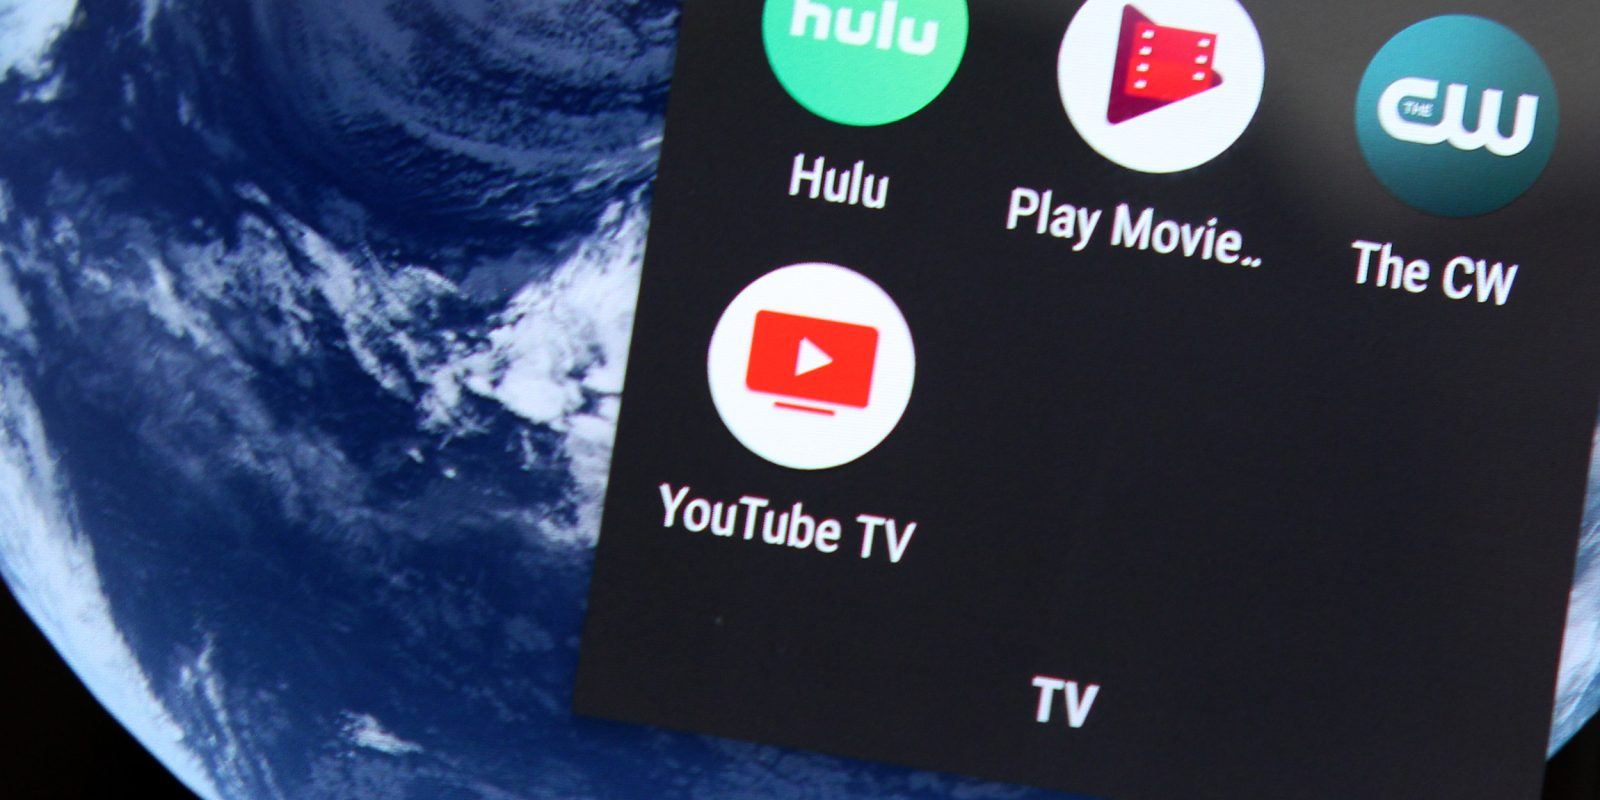 Verizon Fios subscribers can get a month of YouTube TV free